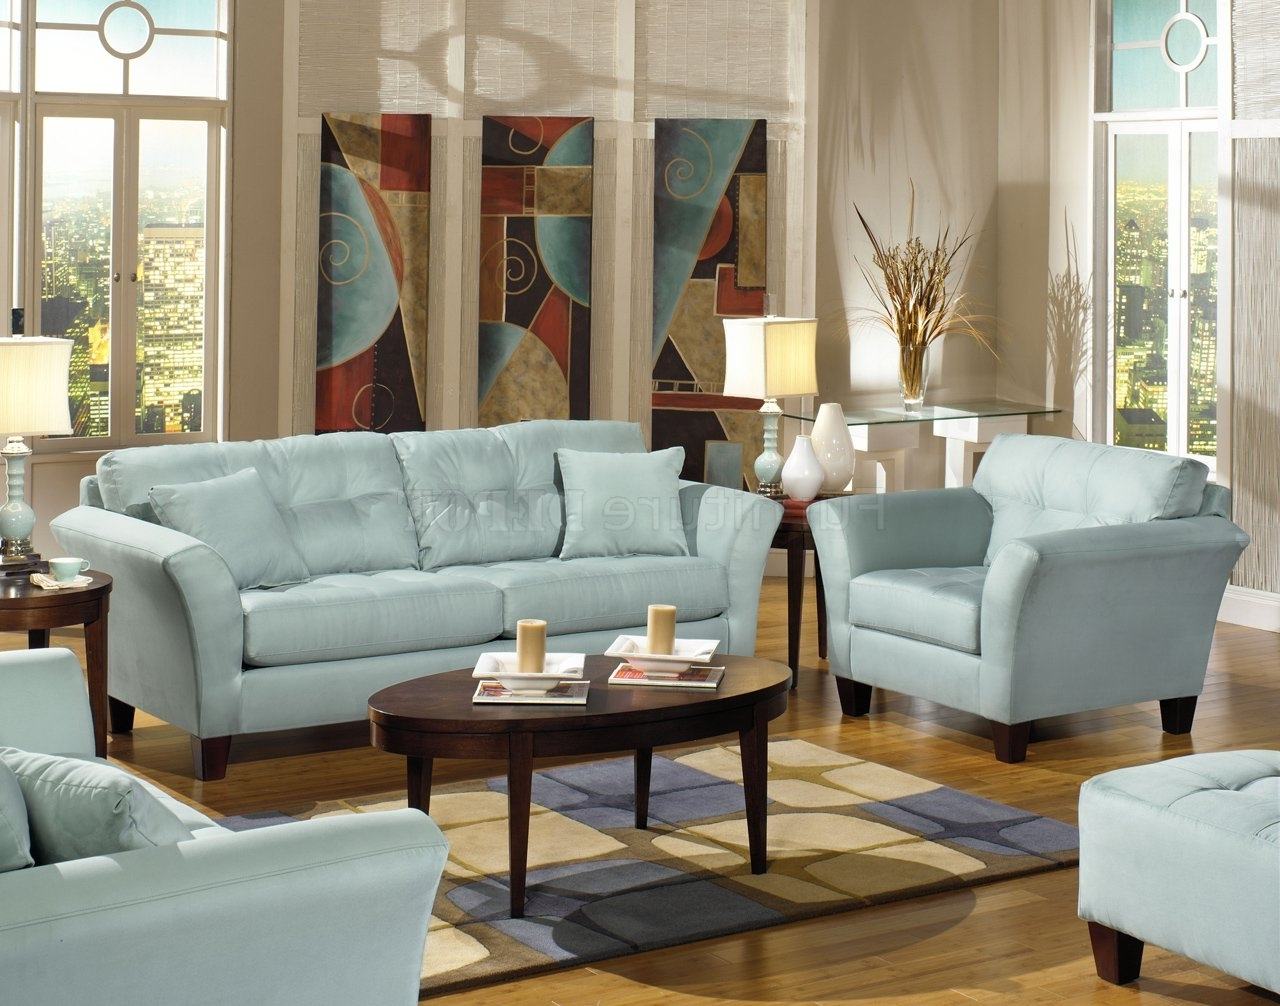 For The With Current Blue Sofa Chairs (View 3 of 15)